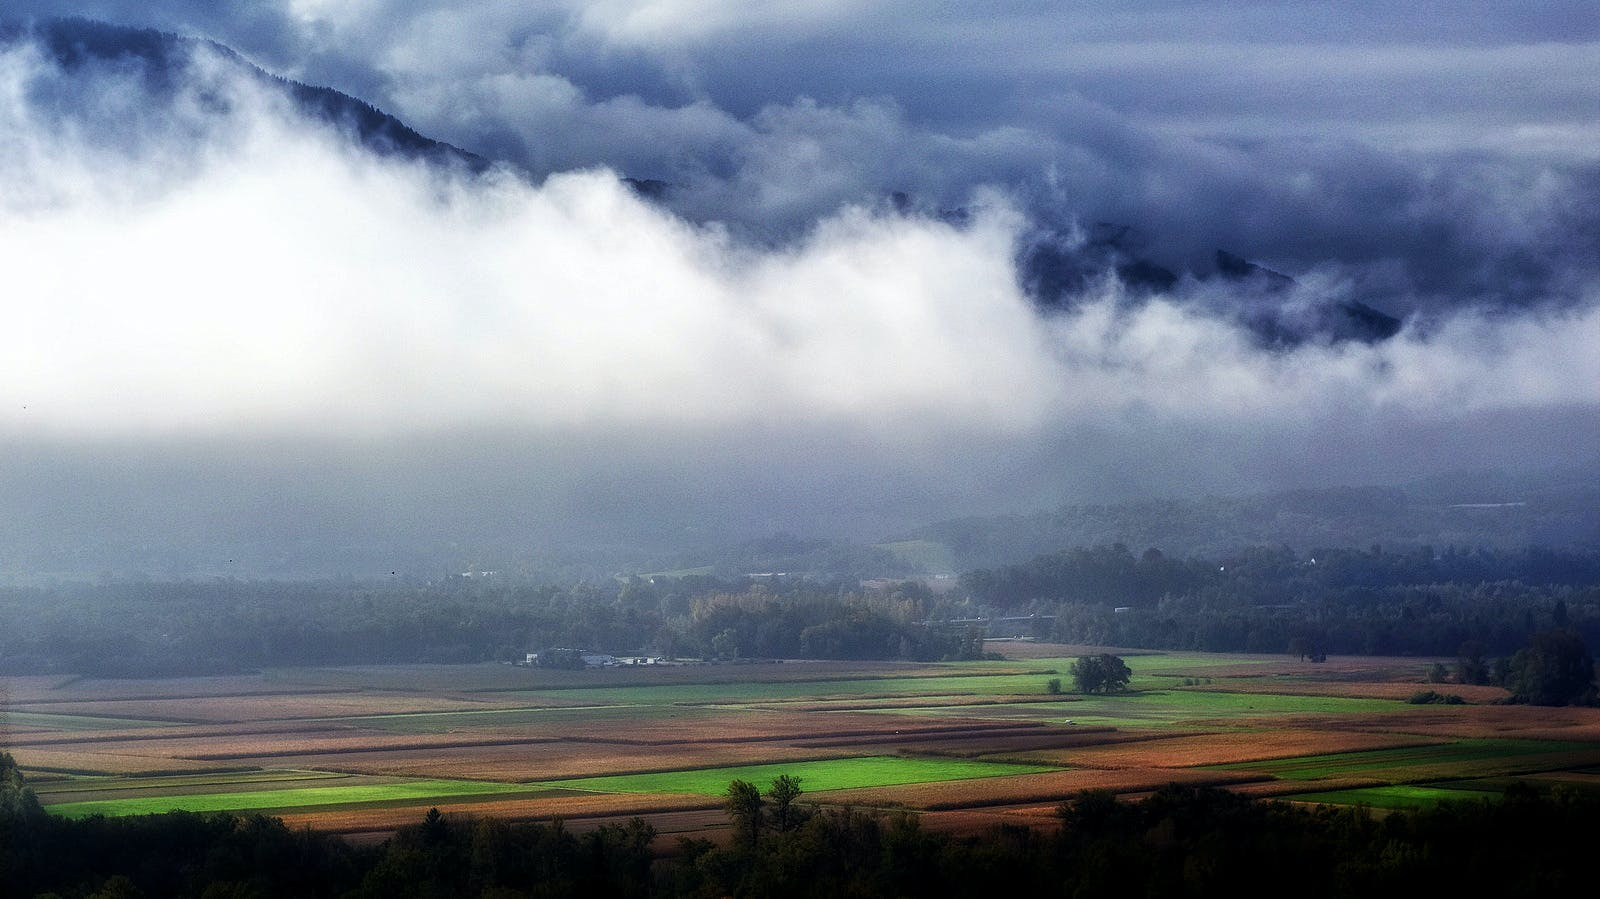 Landscape Photography of Green and Brown Rice Field Surrounded With White and Blue Clouds Near Black Mountains